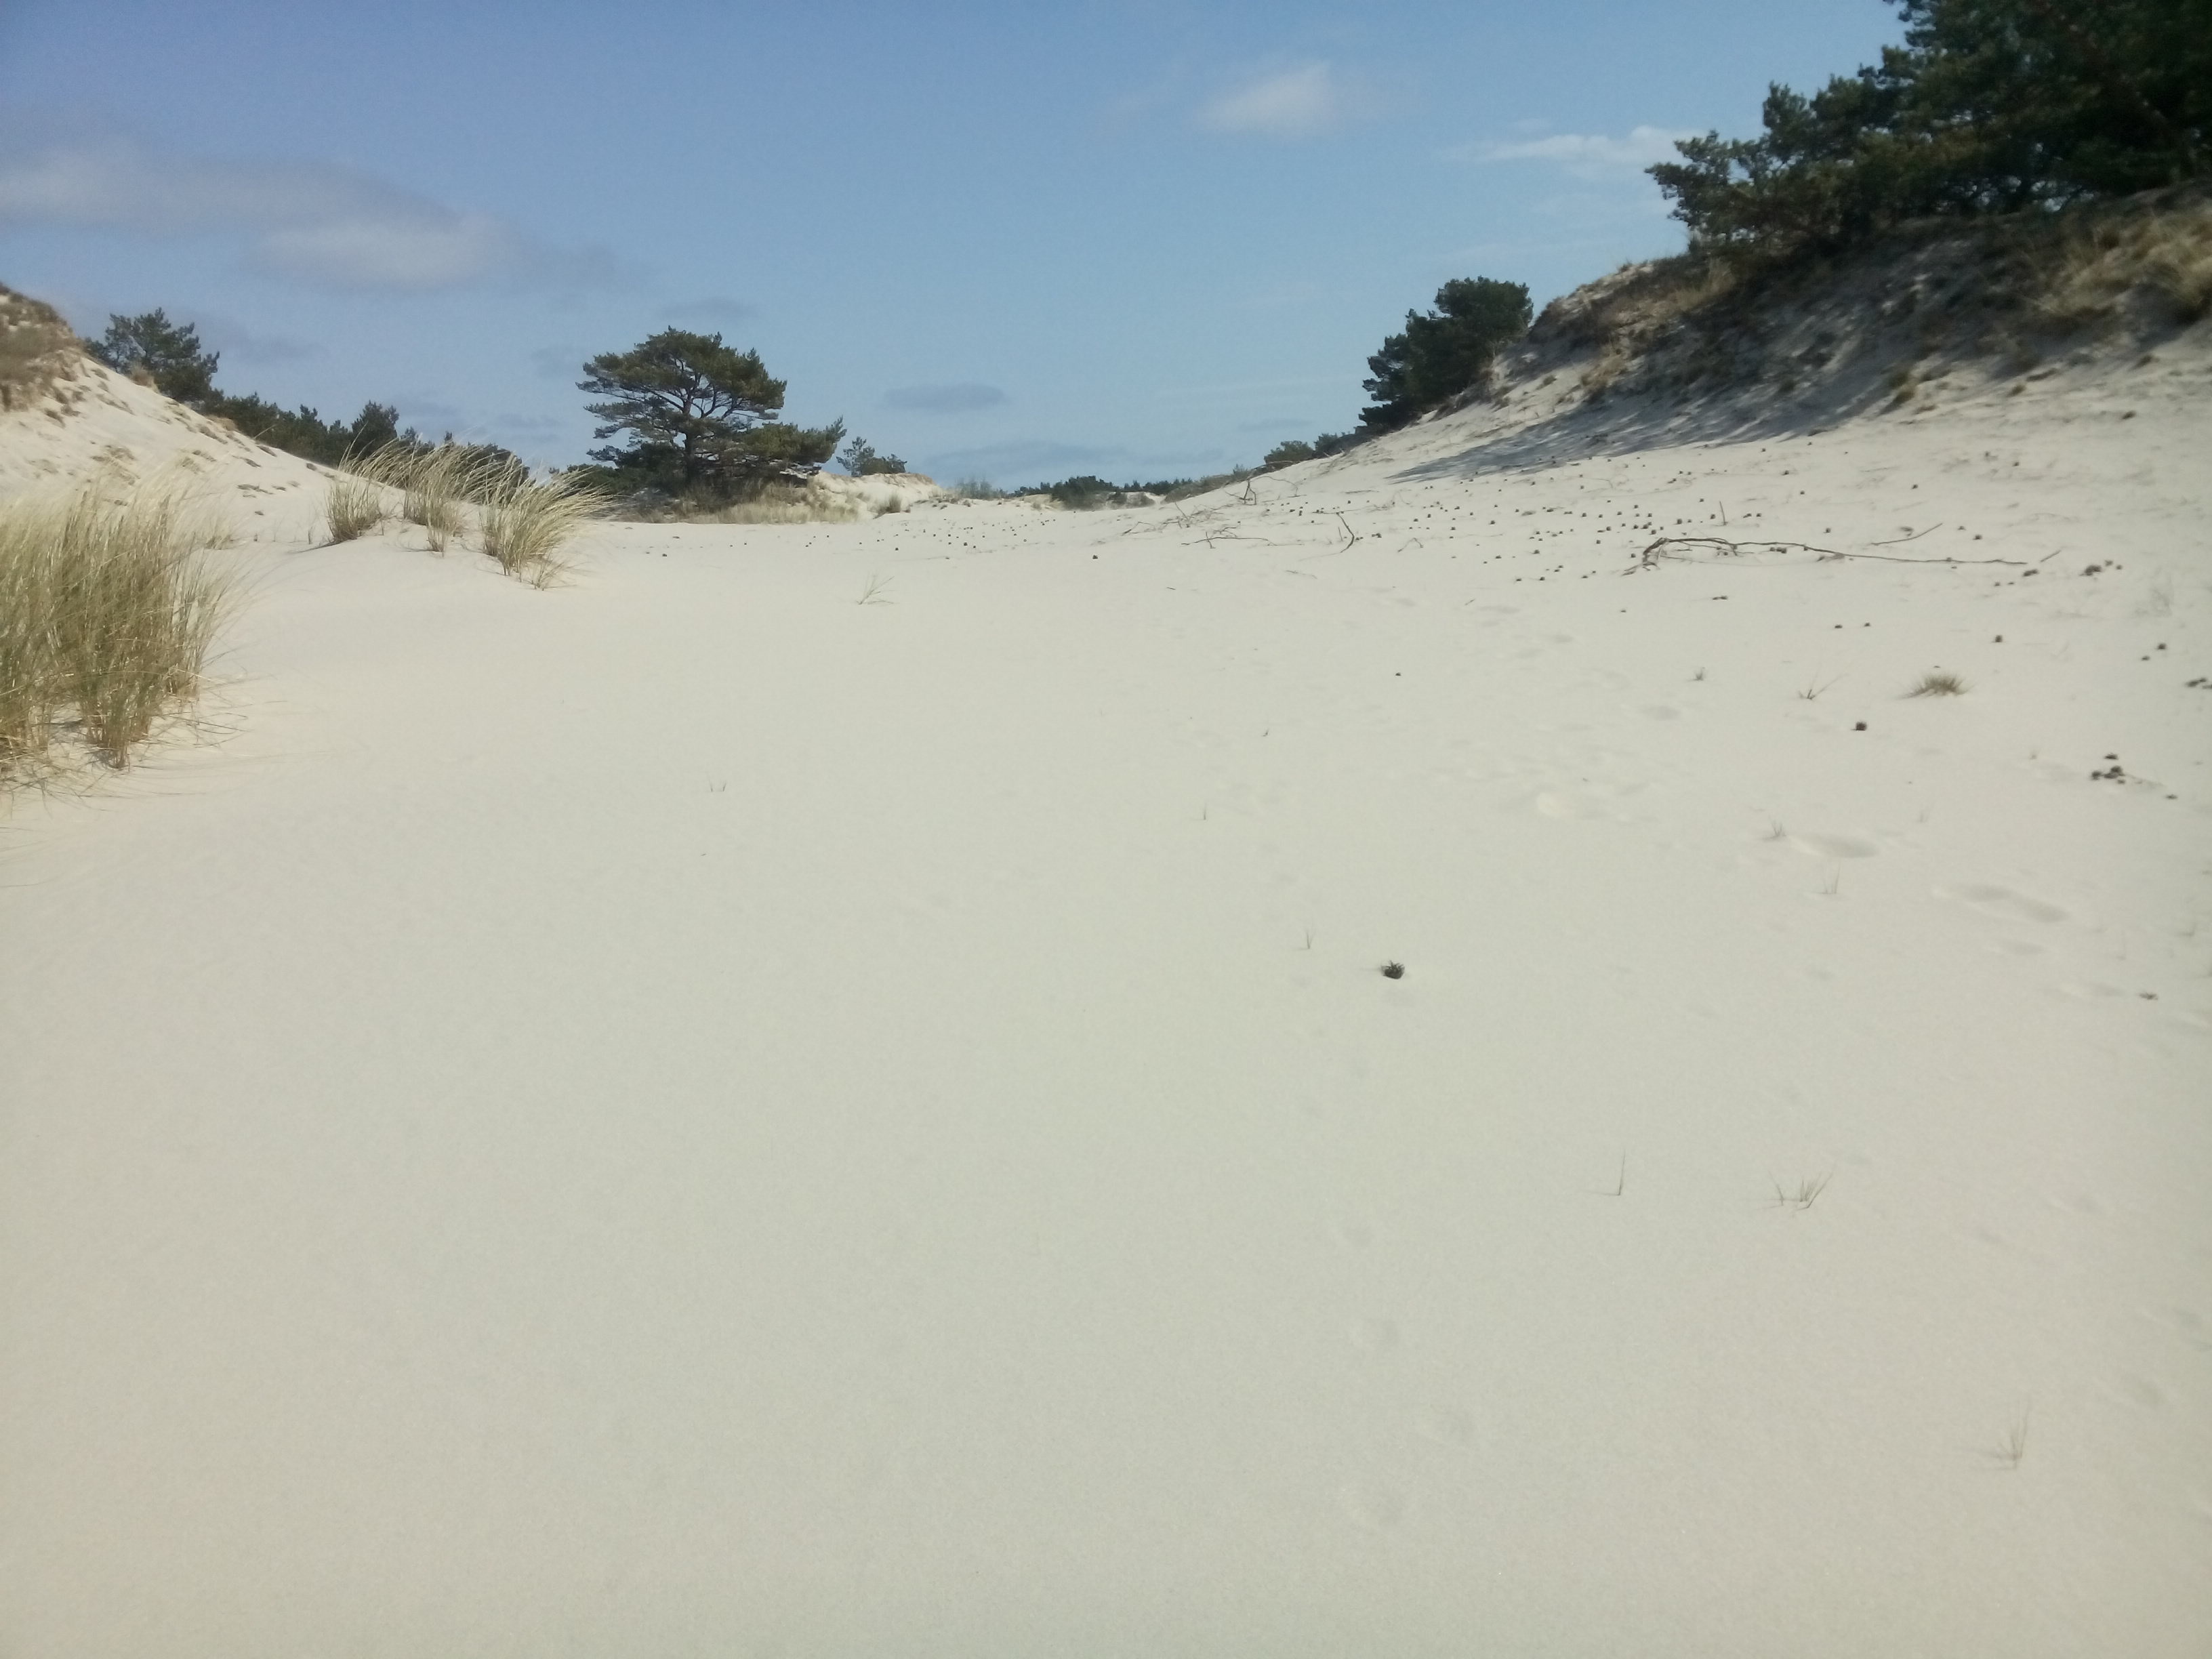 Most of the picture is smooth white sand stretching to the horizon, with some trees and blue sky